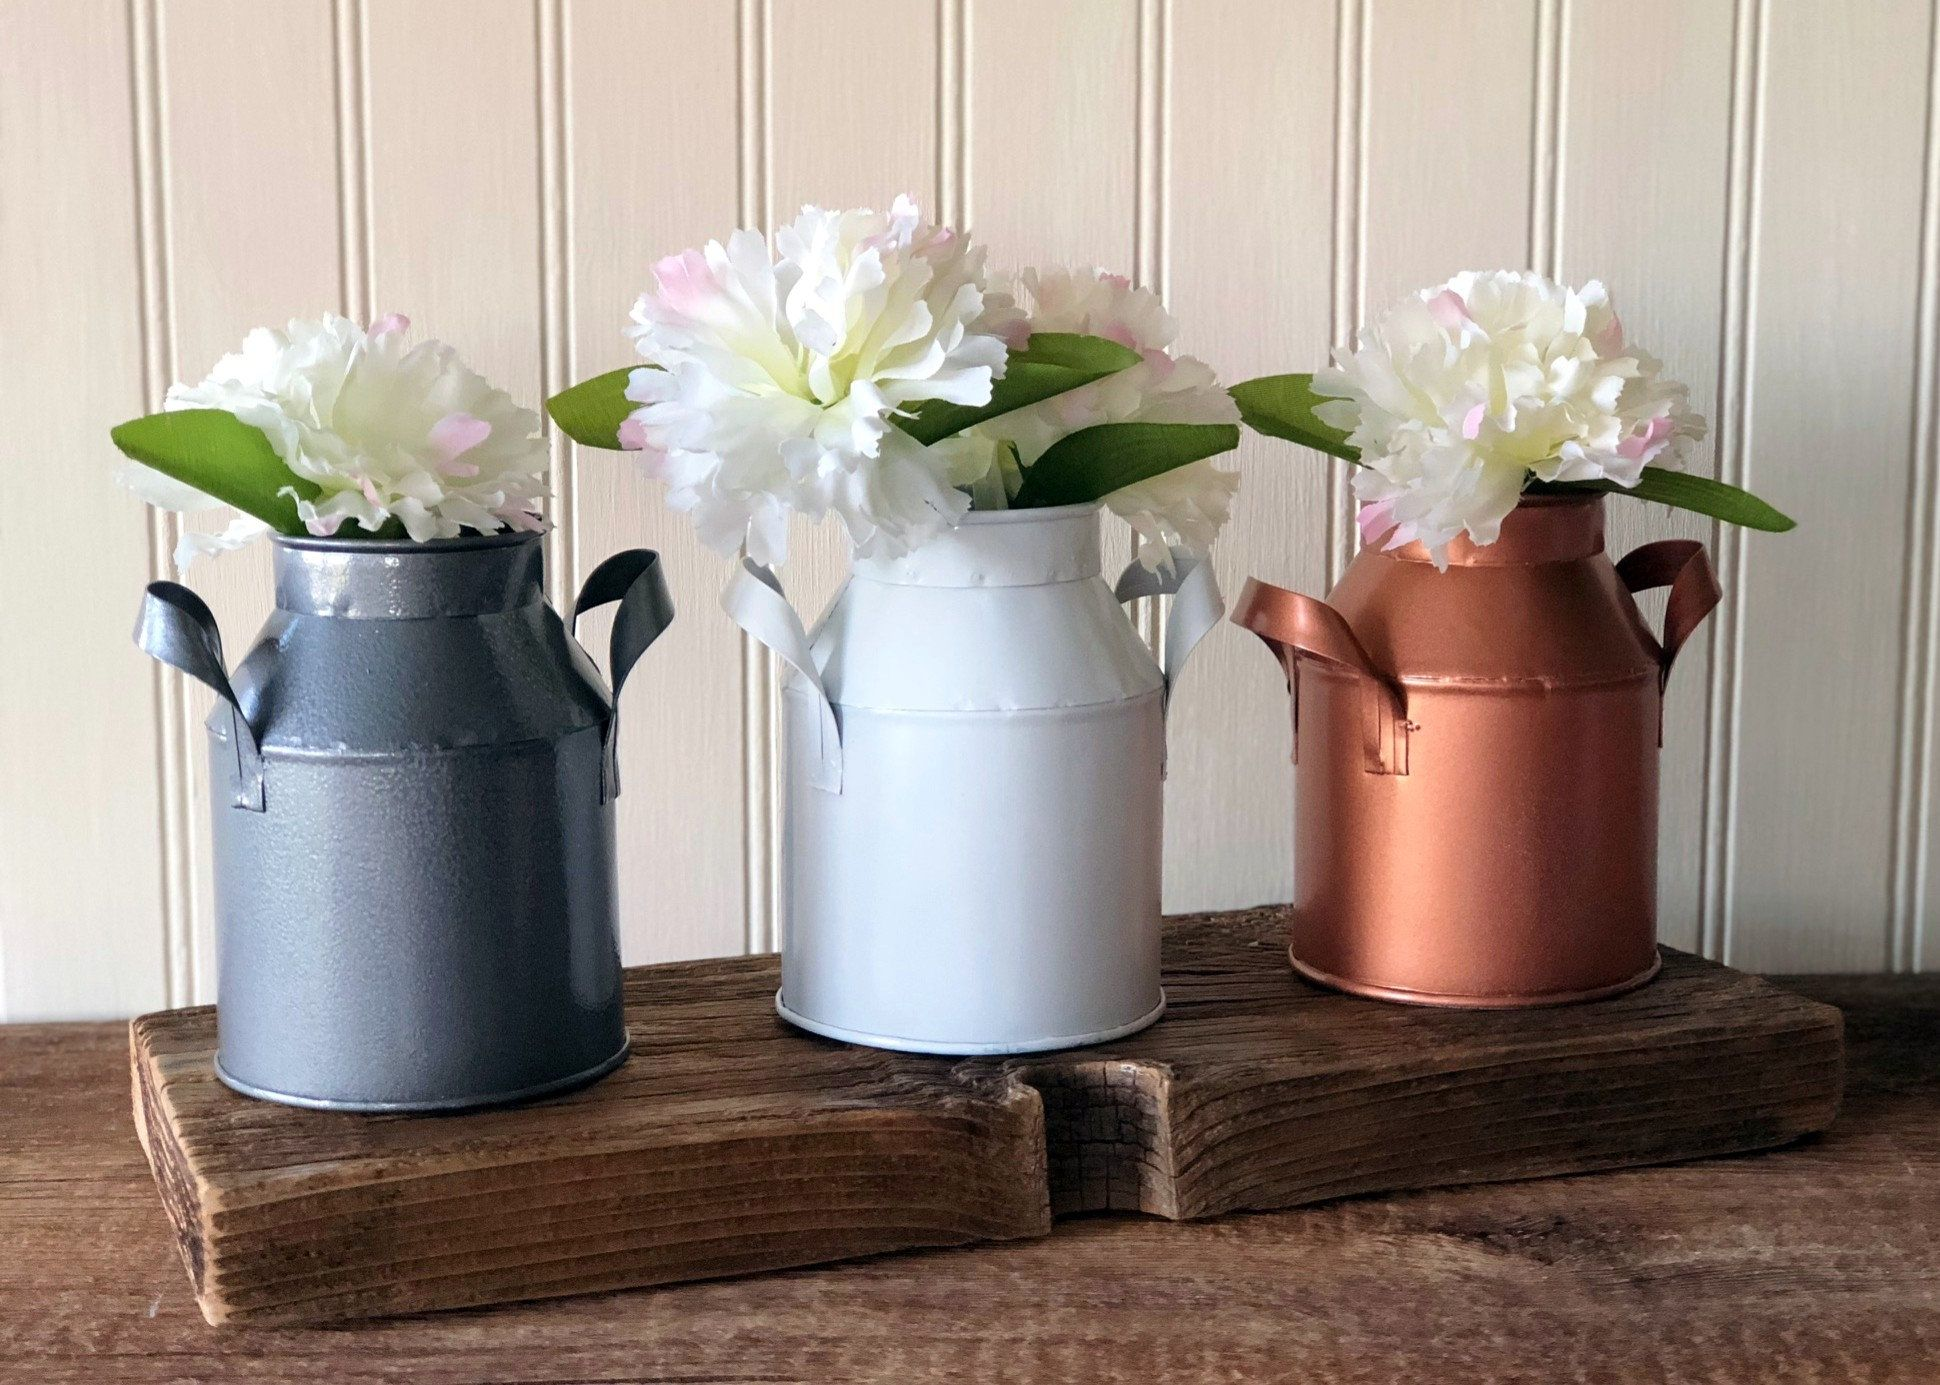 Farmhouse Milk Cans, French Country decor, country decor